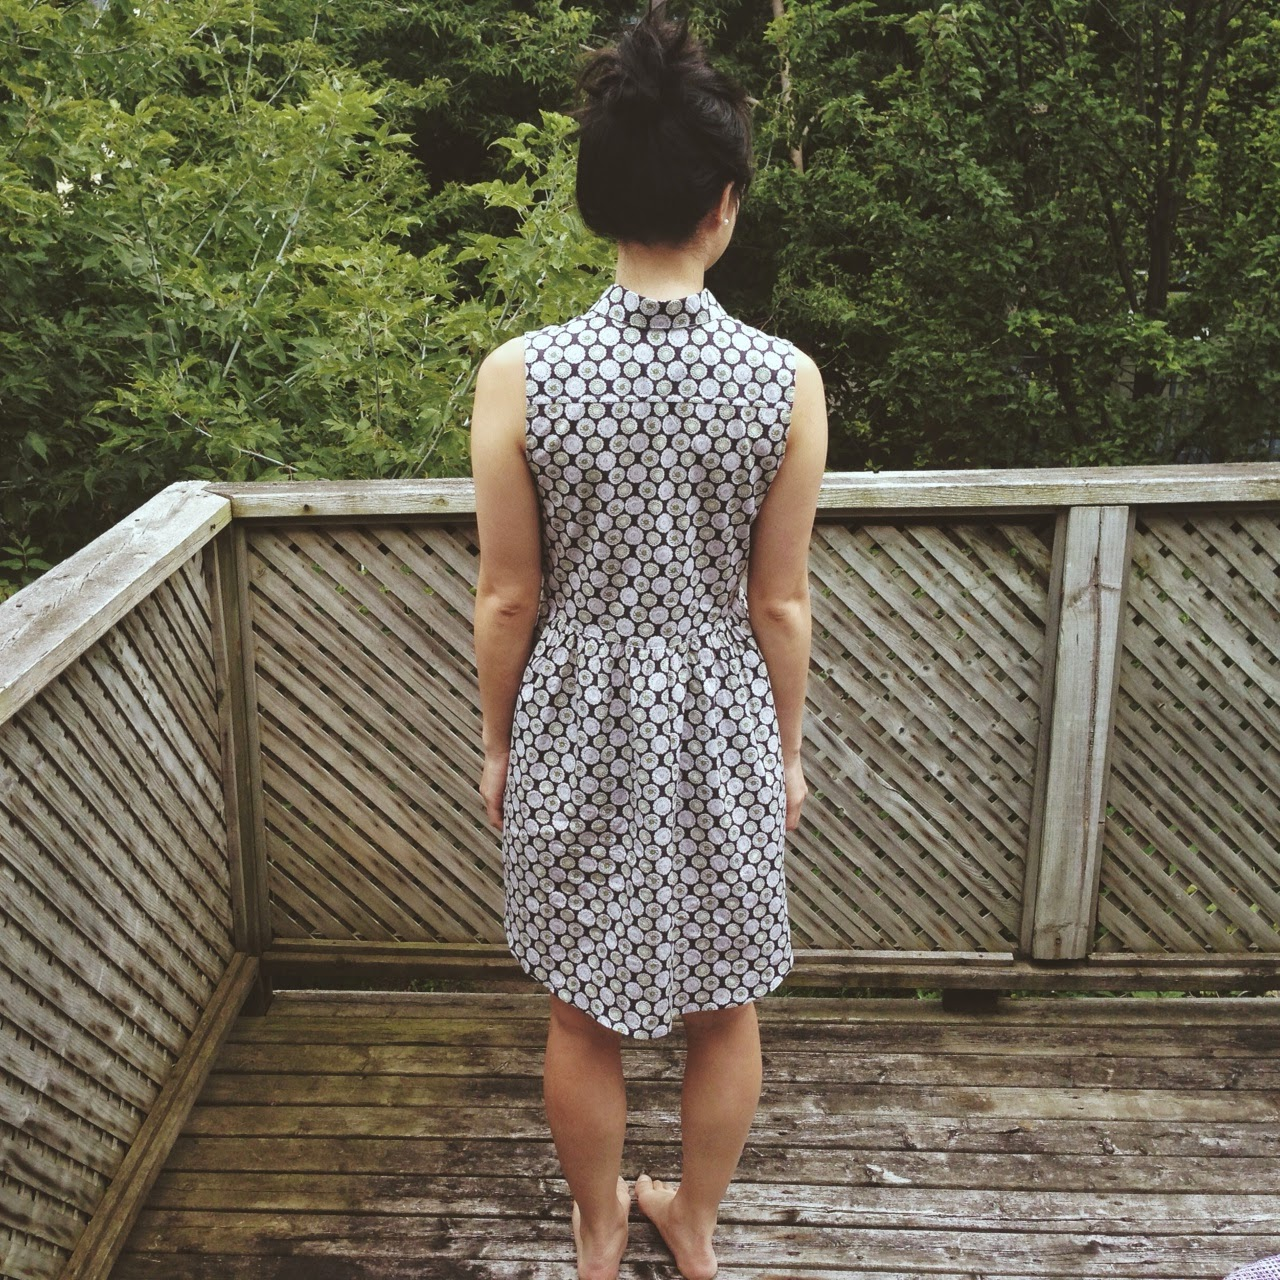 Alder Shirtdress View B, back view.